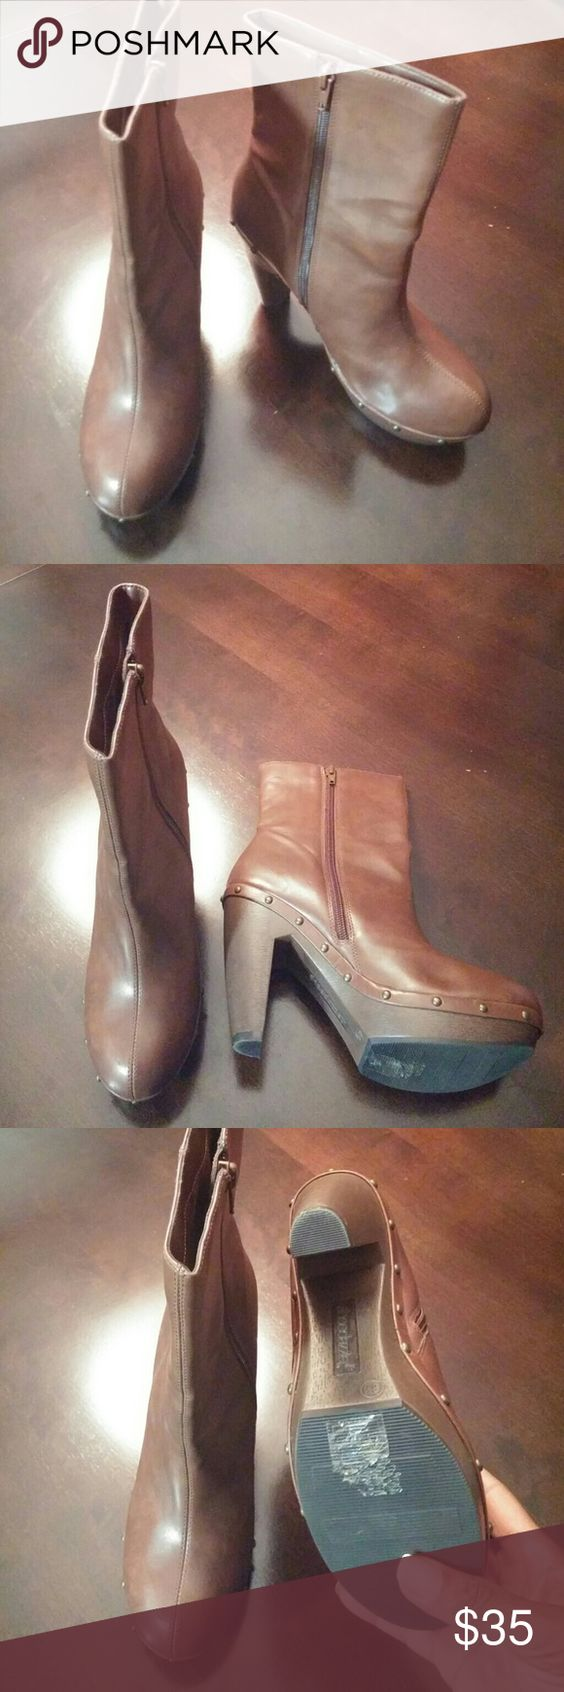 Shoedazzle Brown Ankle Boots - like New worn once Shoedazzle Brown Ankle Boots - like New worn once, excellent condition Shoe Dazzle Shoes Ankle Boots & Booties